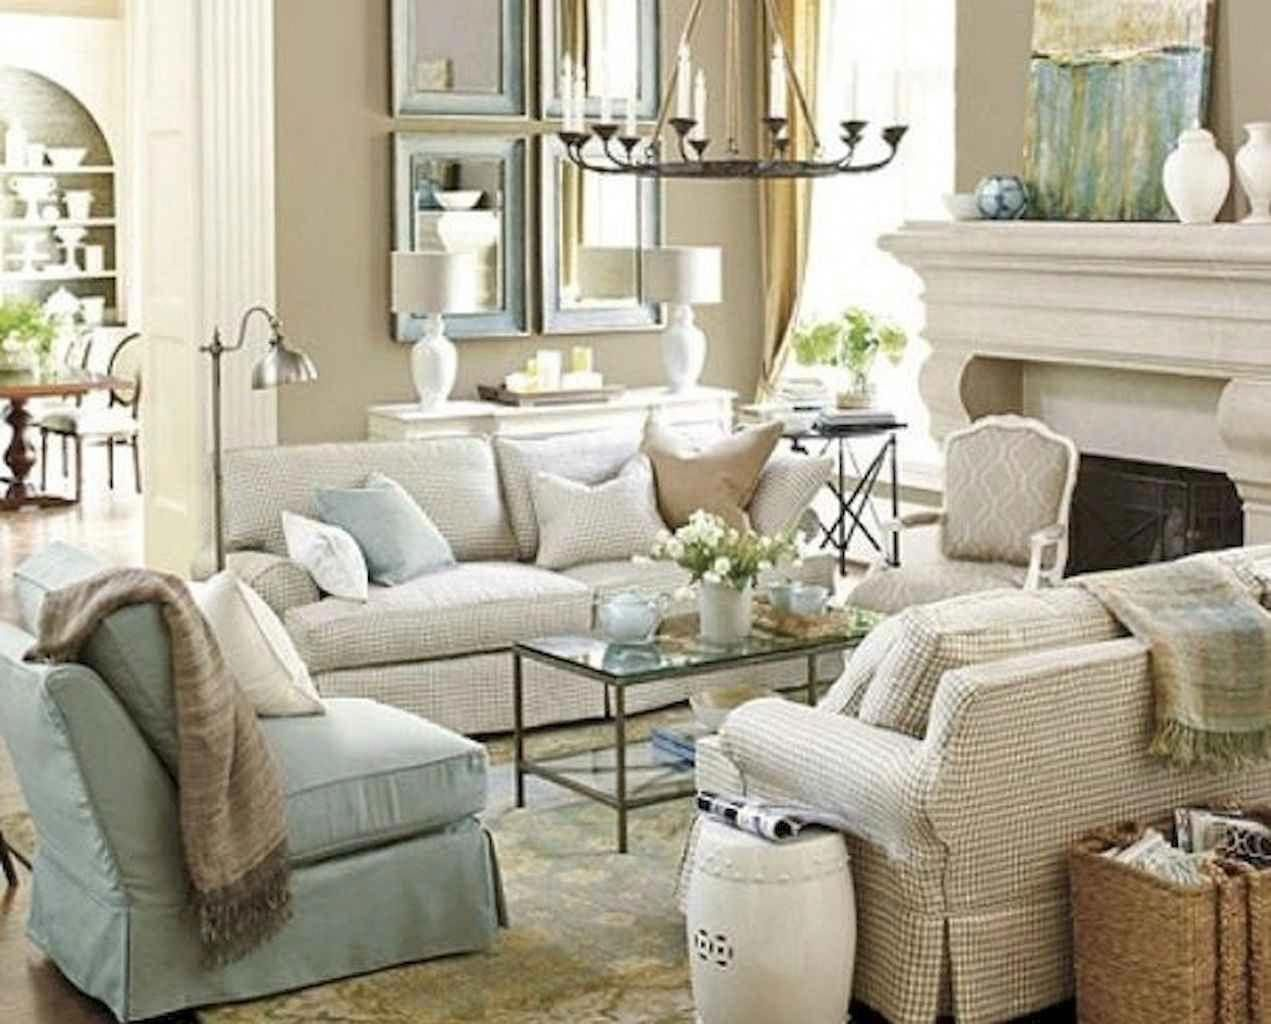 French Country Decor Images Frenchcountrydecor Frenchcountrybedroom Living Room Decor Country Country Style Living Room Living Room Furniture Arrangement French living room decor